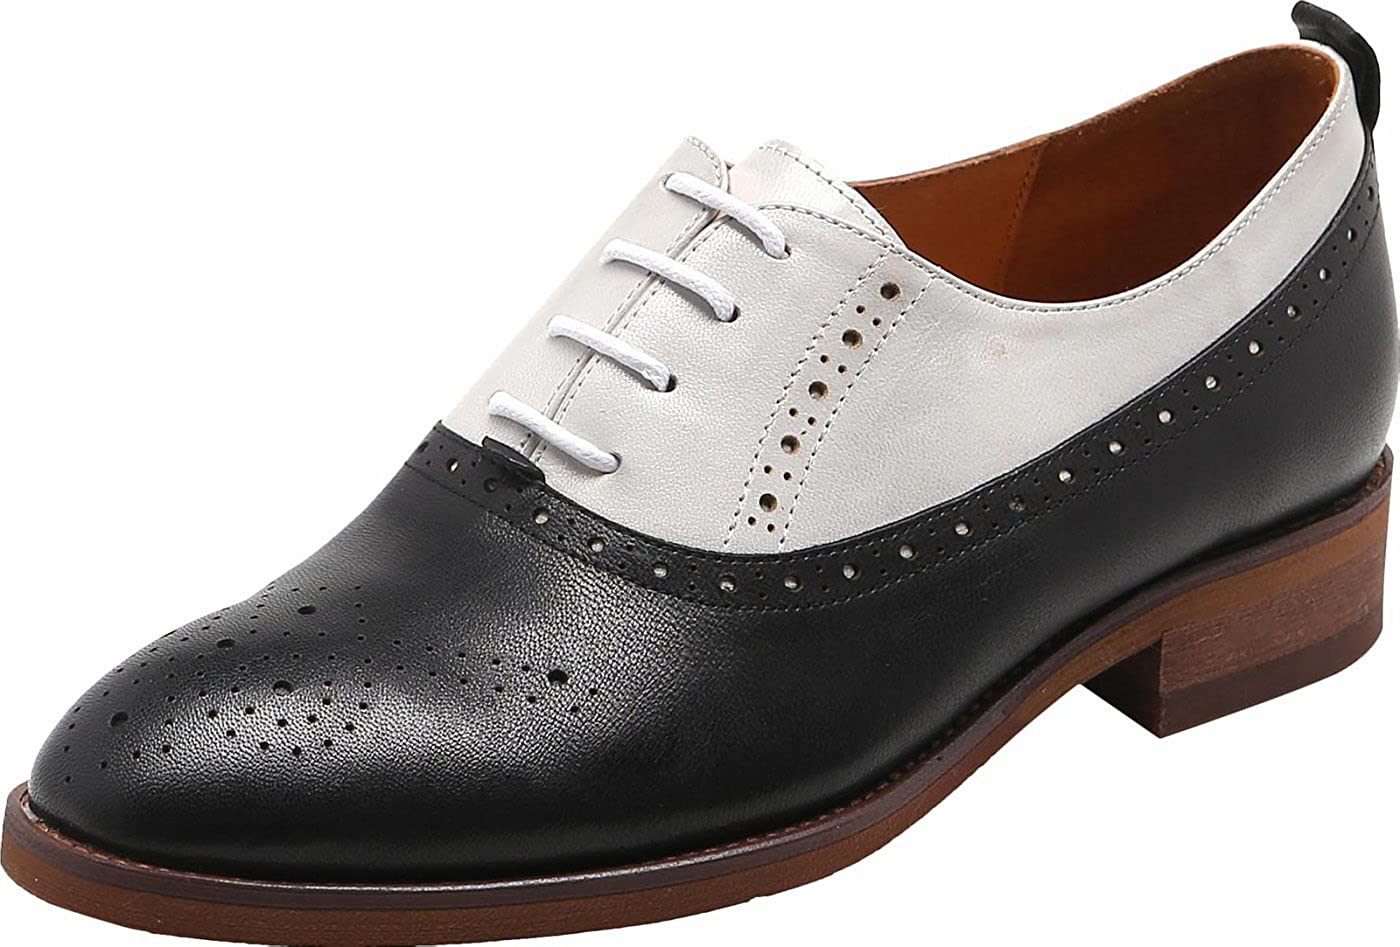 Latasa Womens Chic Contrast Color Stitching Leather Oxfords